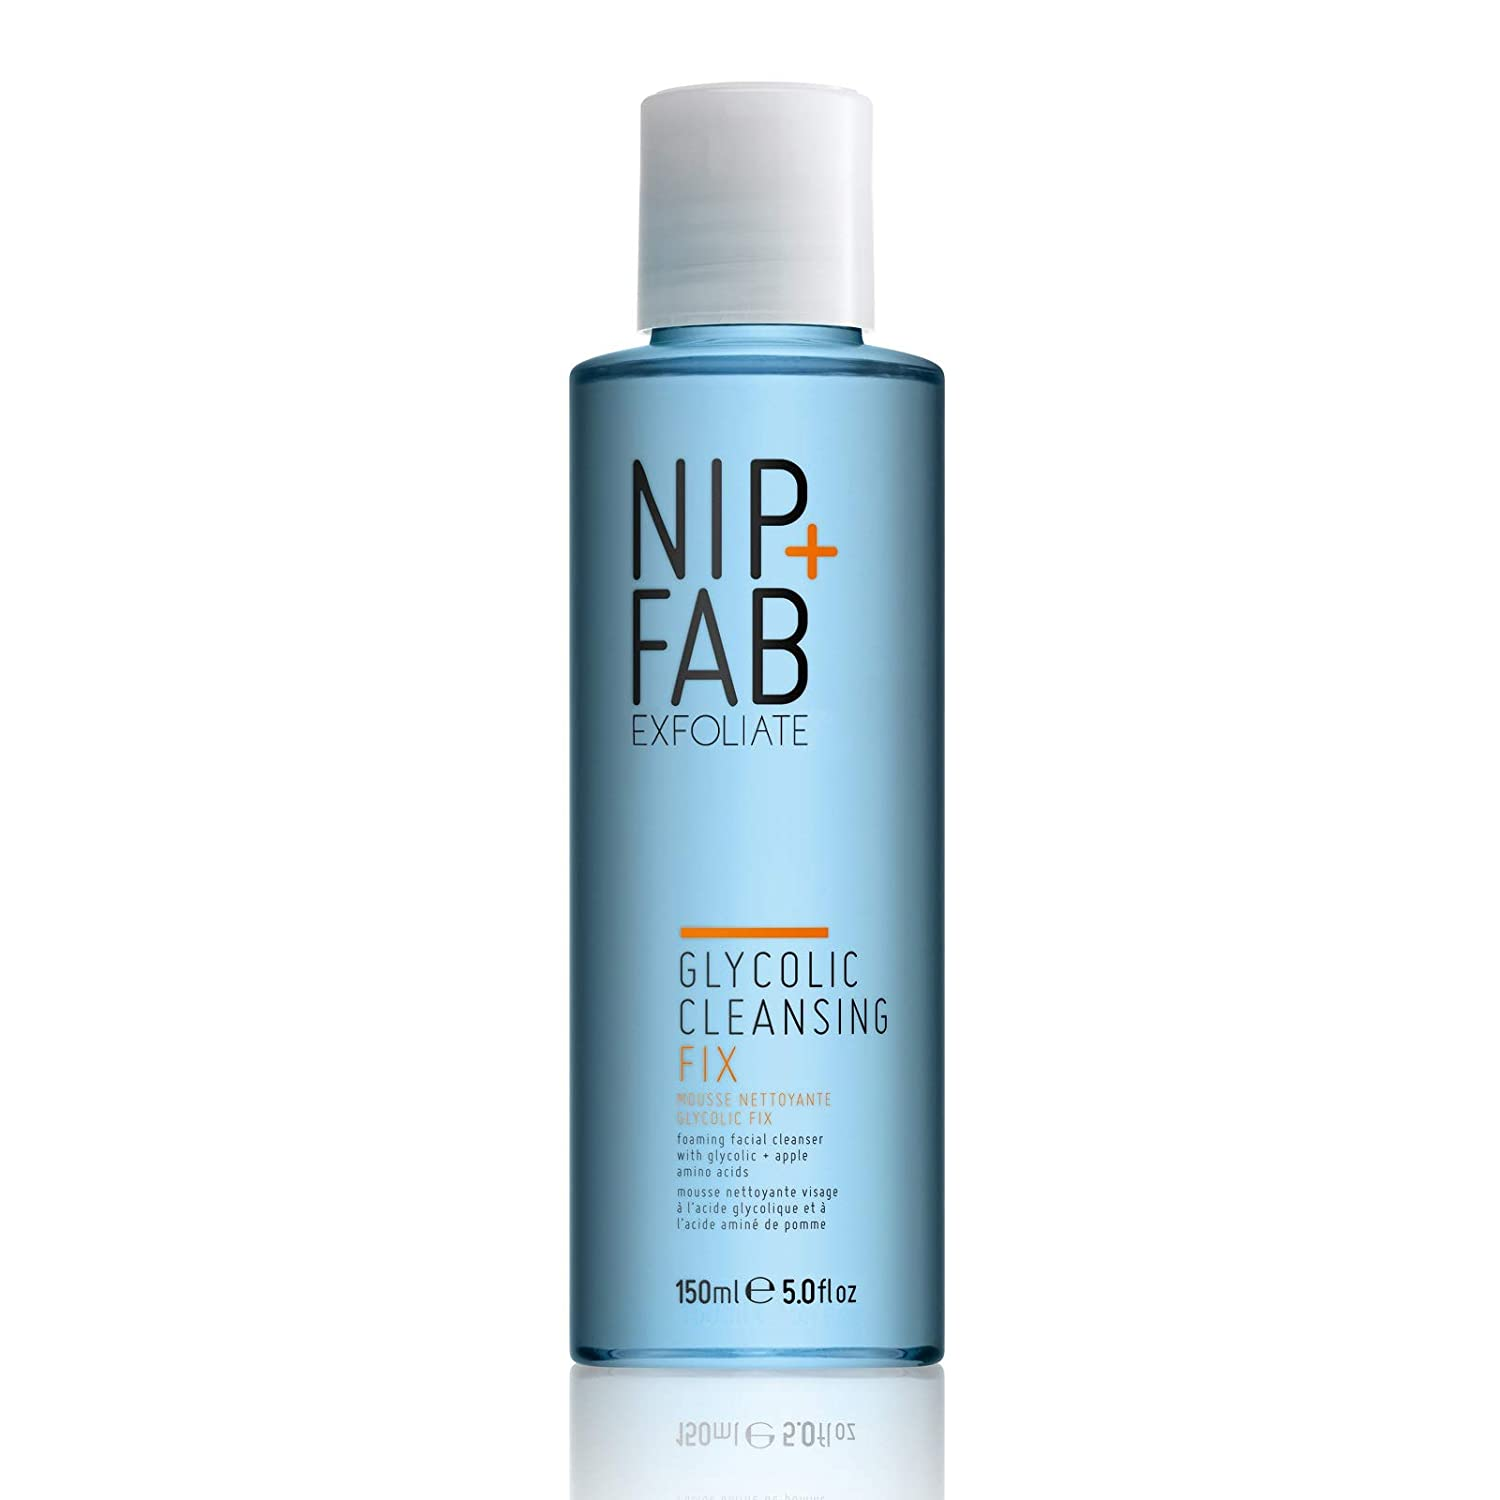 Nip + Fab Glycolic Fix Cruelty-Free Gel Cleanser